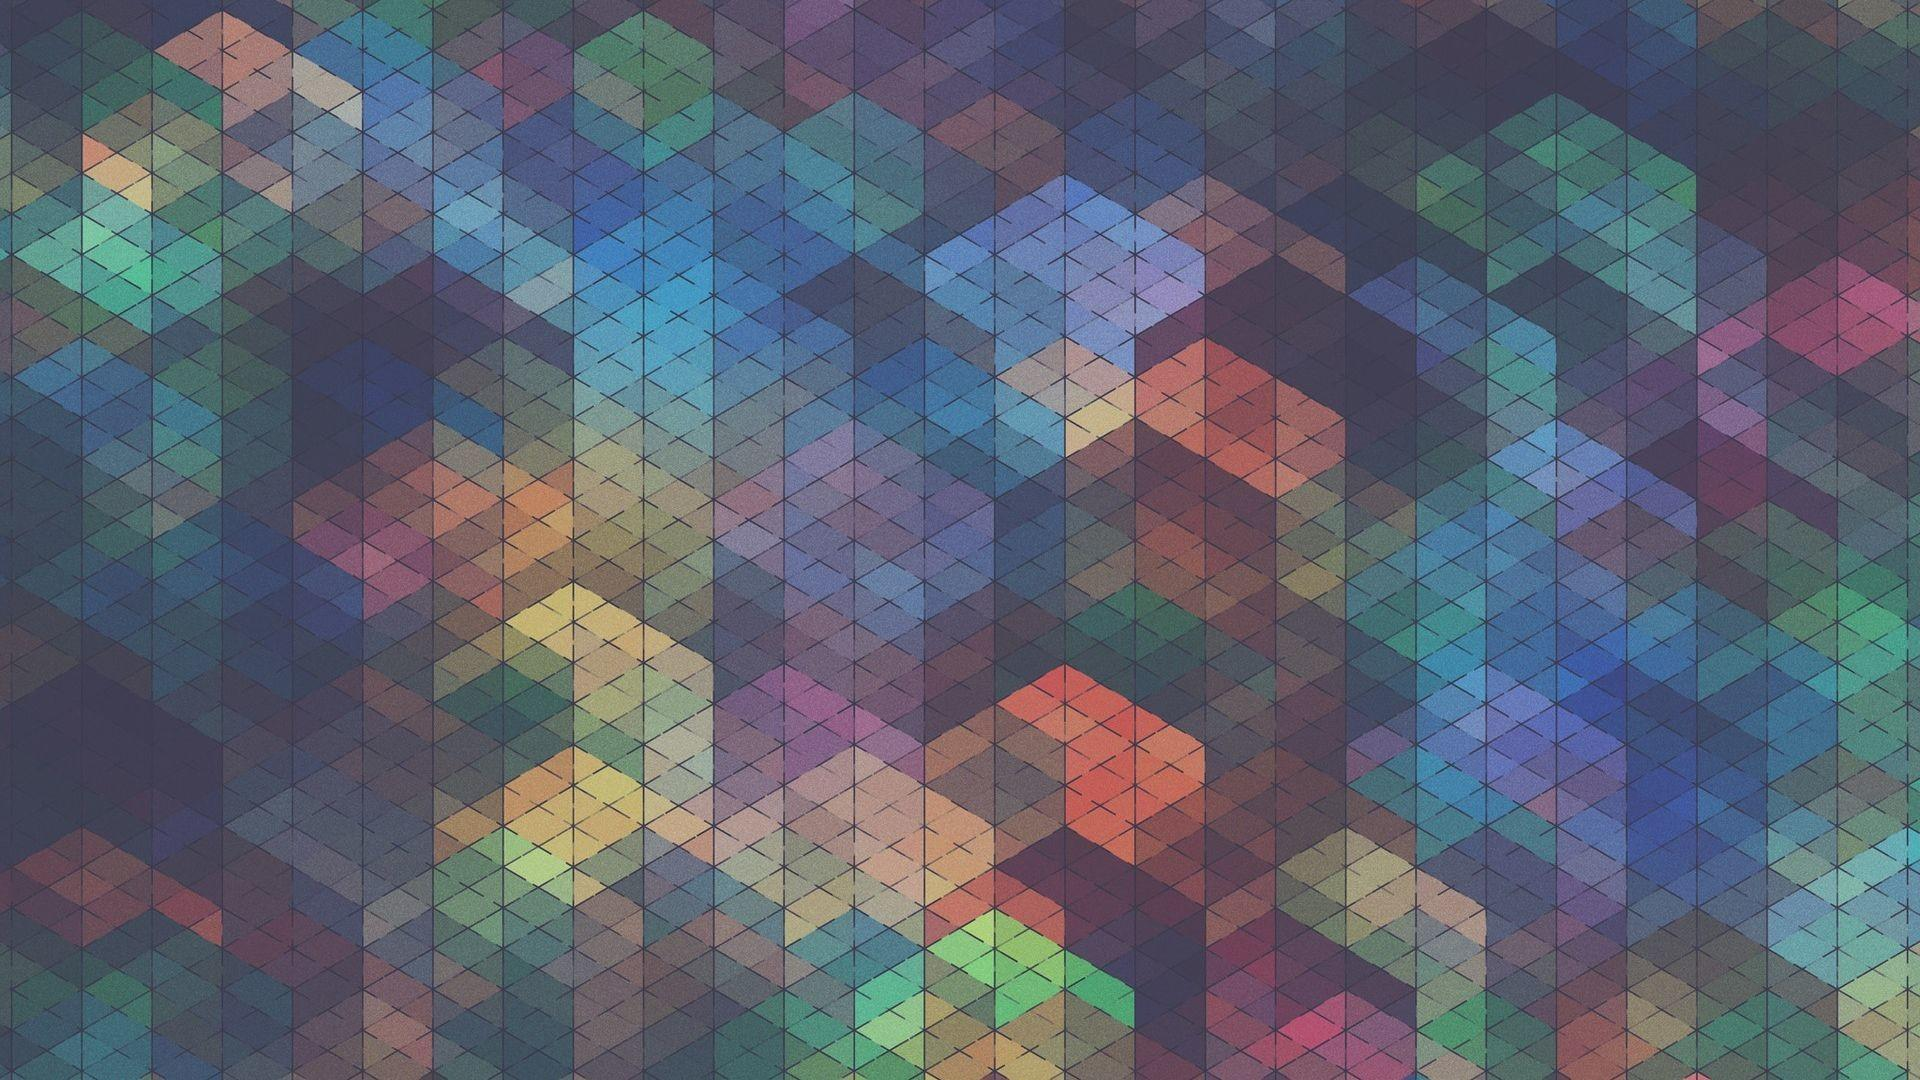 Abstract Multicolor Tiles Fullhdwpp